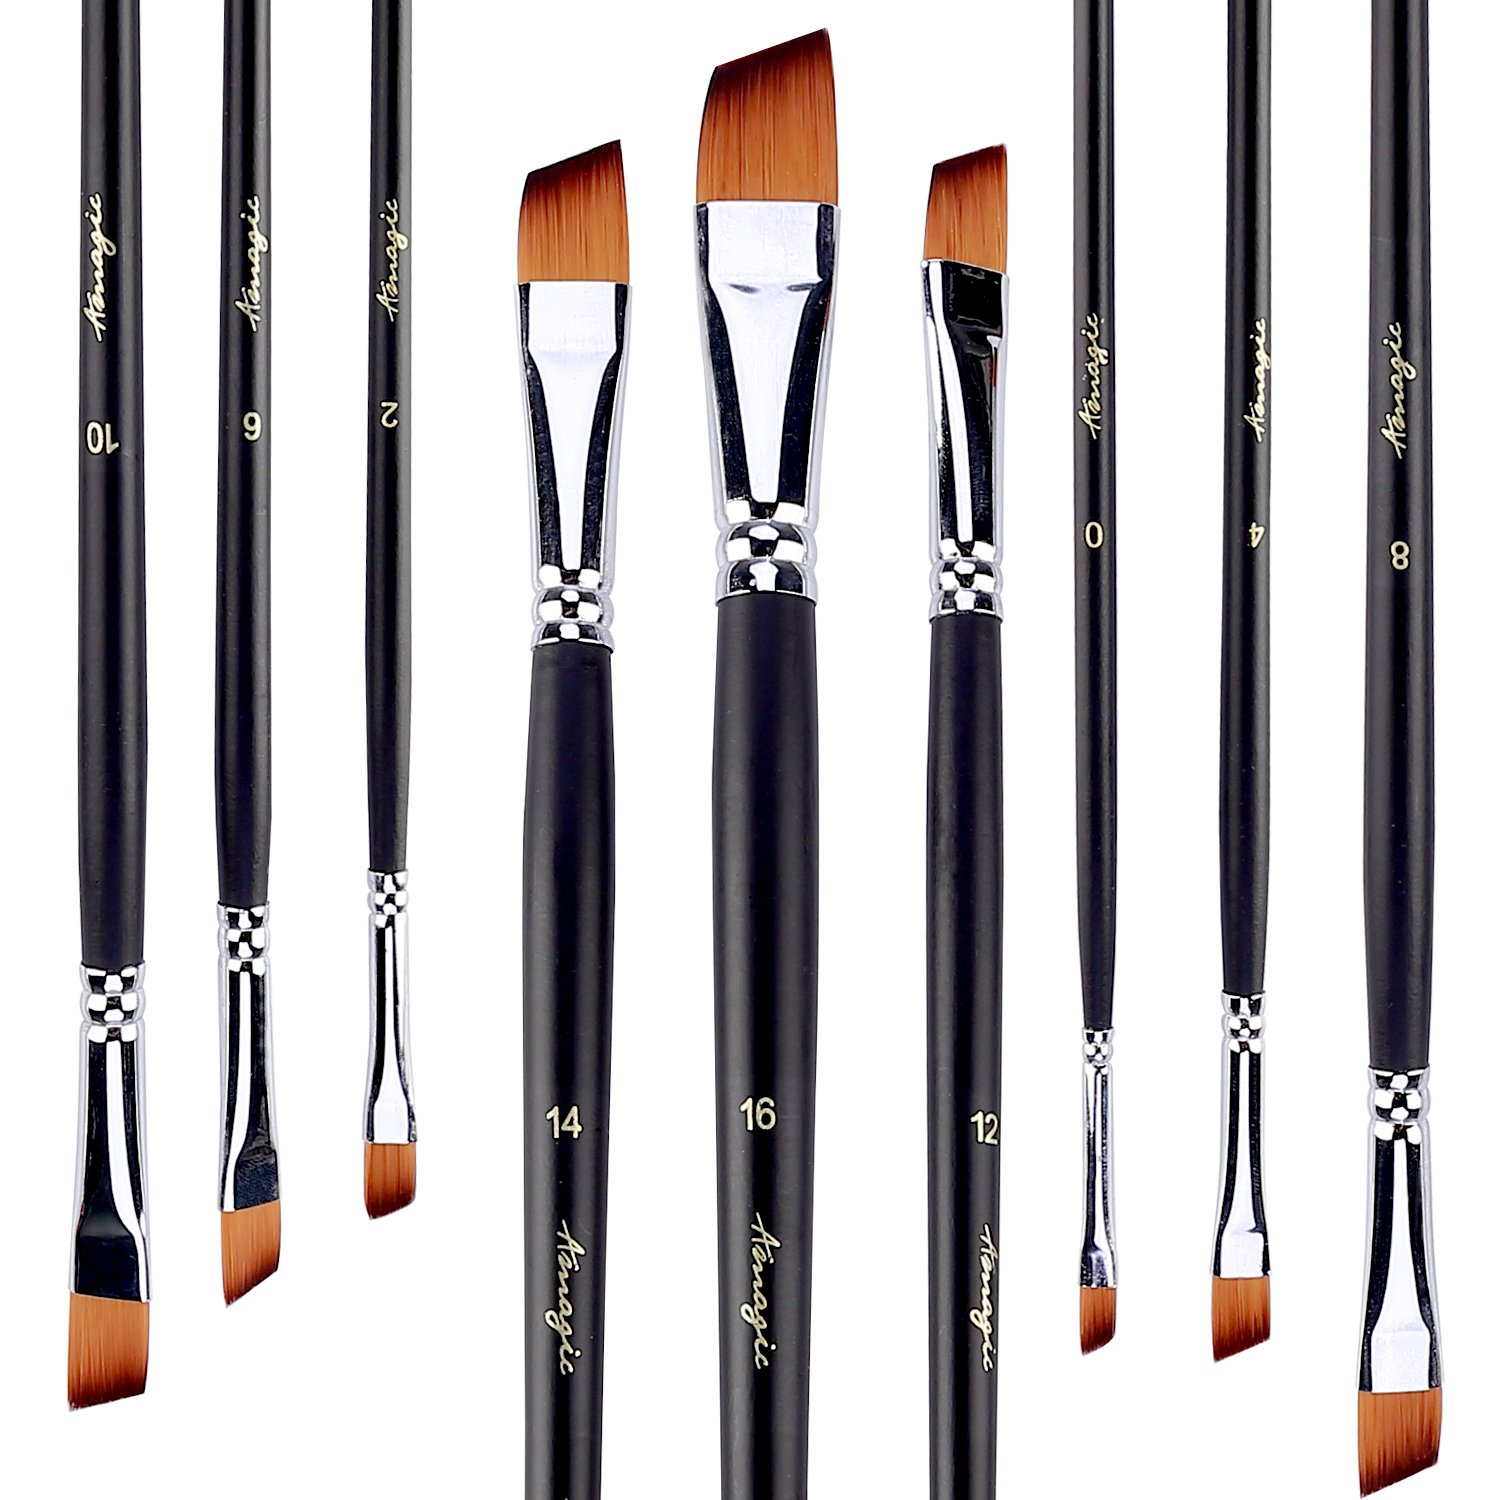 Angled Flat Tipped Brushes by Amagic Art Angular Paintbrush Set for Acrylic Oil Watercolor, 9 Pieces Face and Body Professional Painting Kits with Synthetic Nylon Tips